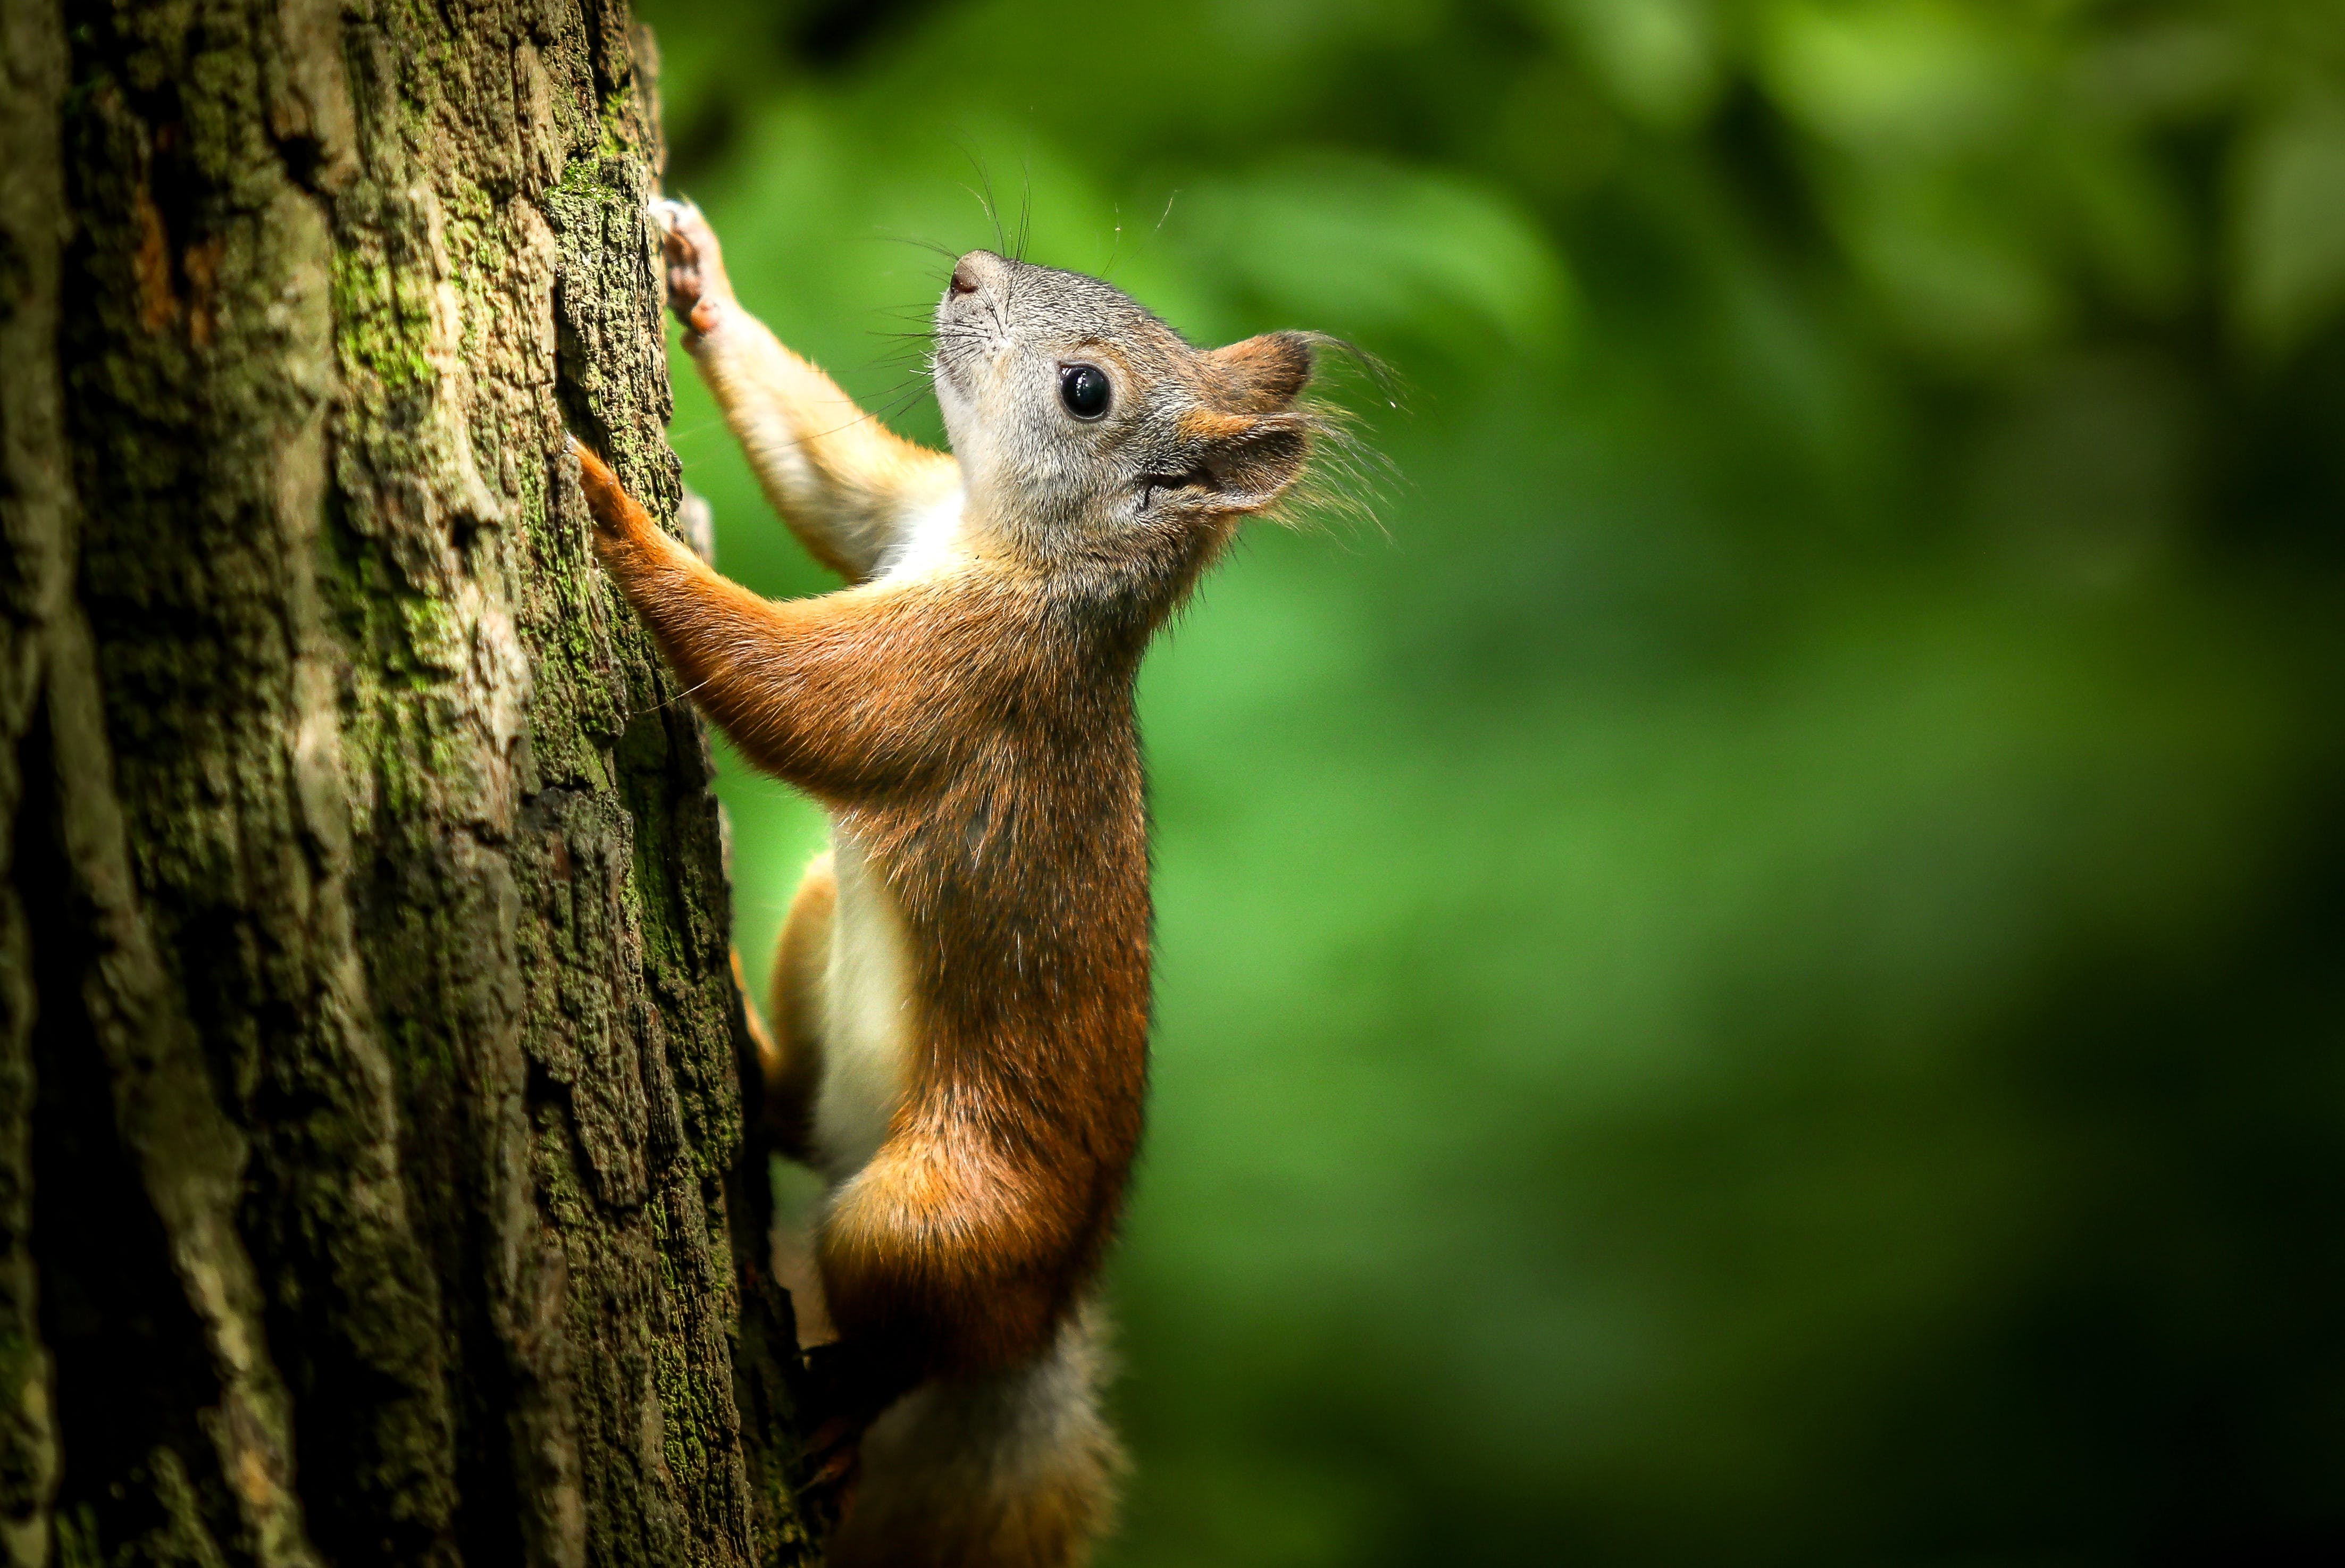 Close Up Photography of Squirrel Climbing Tree